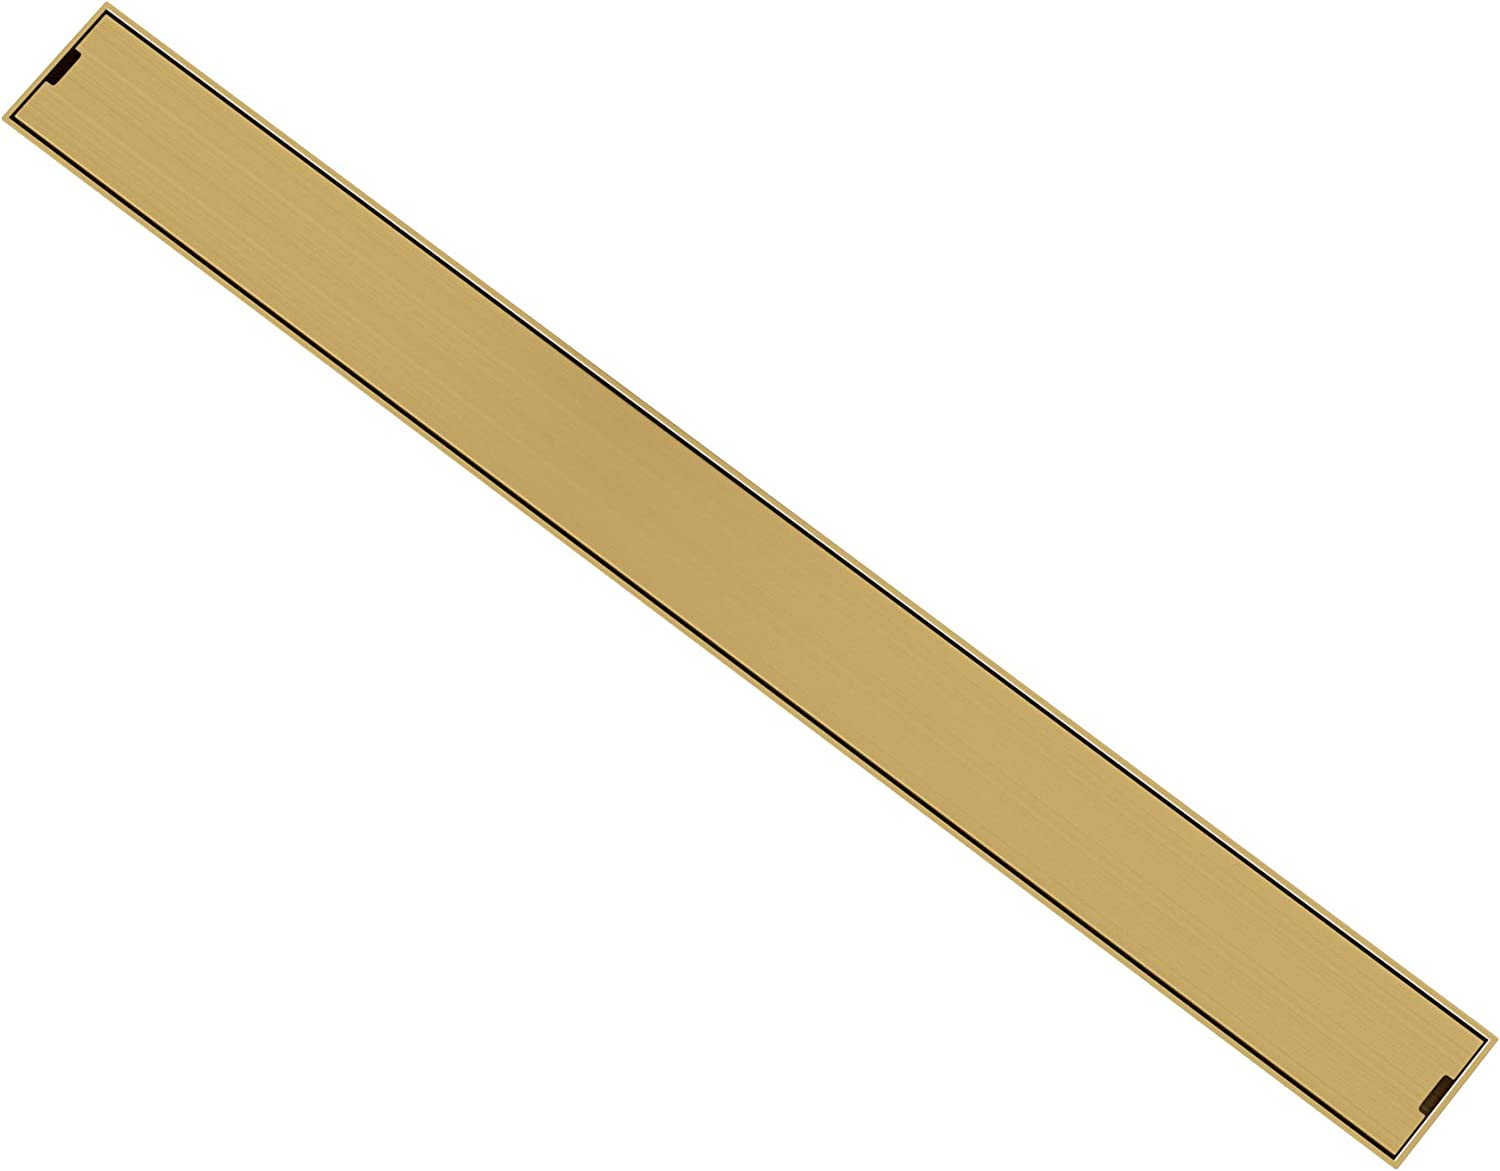 KATAIS 24 Inch Linear Brushed Floor Popular Ranking TOP3 shop is the lowest price challenge Gold Bathroom Drai Invisible